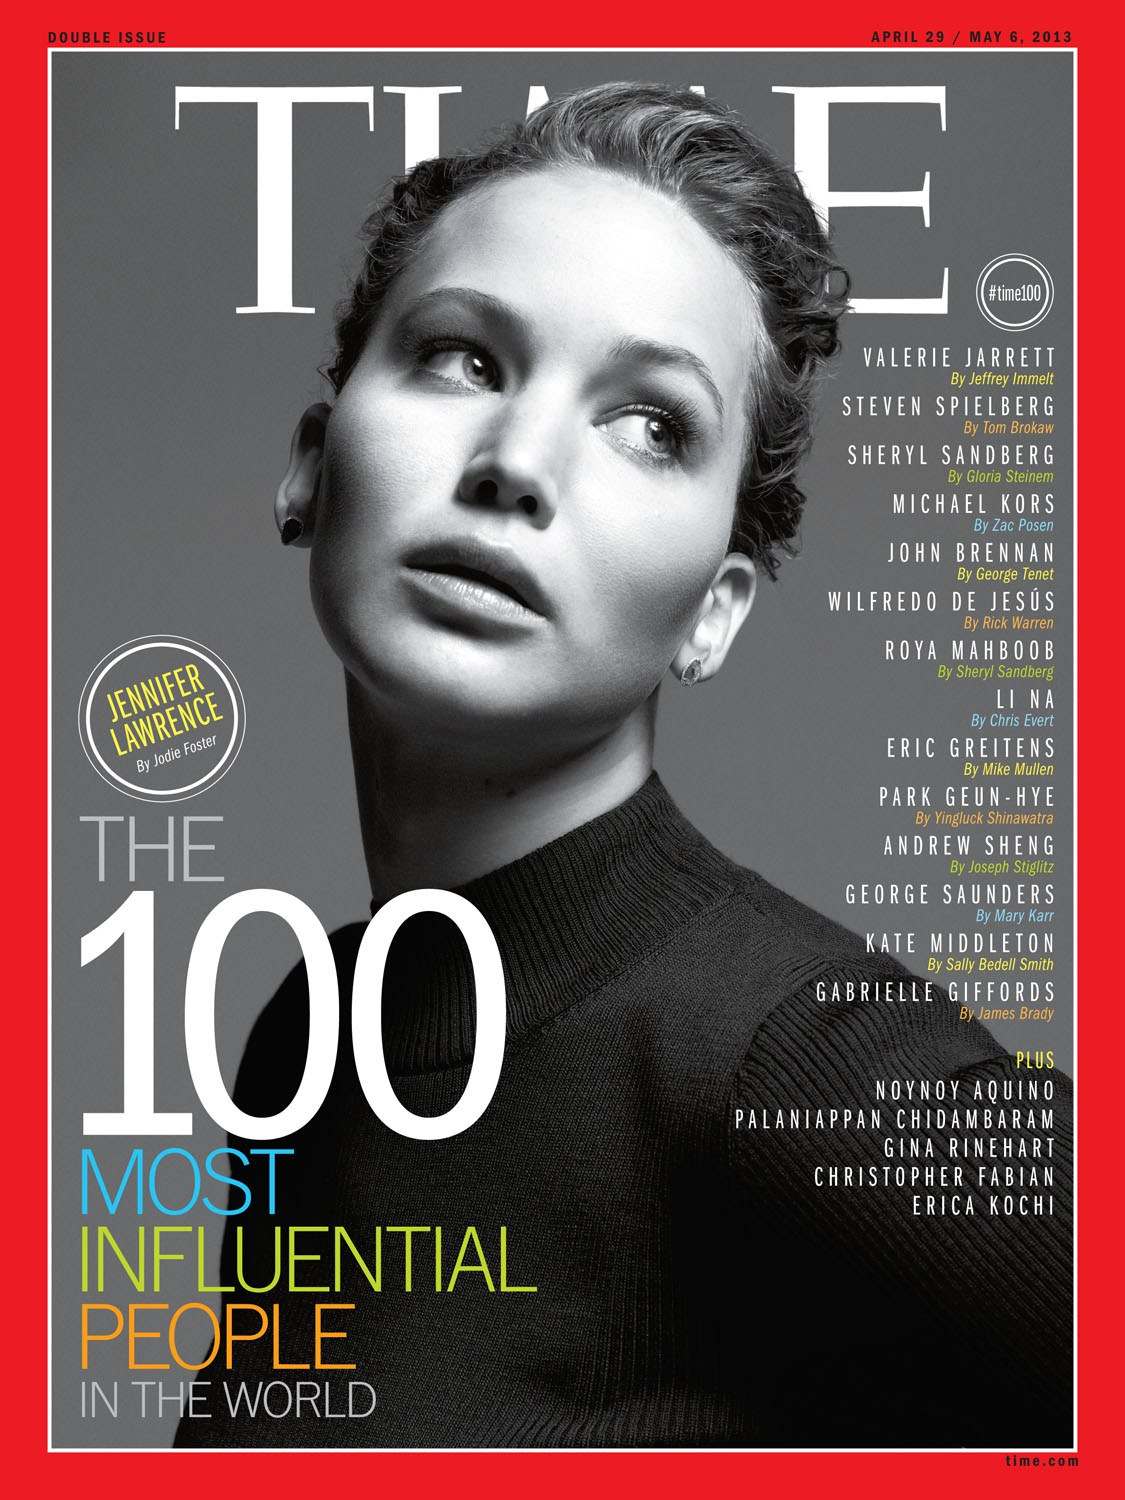 2012 TIME The 100 Most Influential People in the World ...